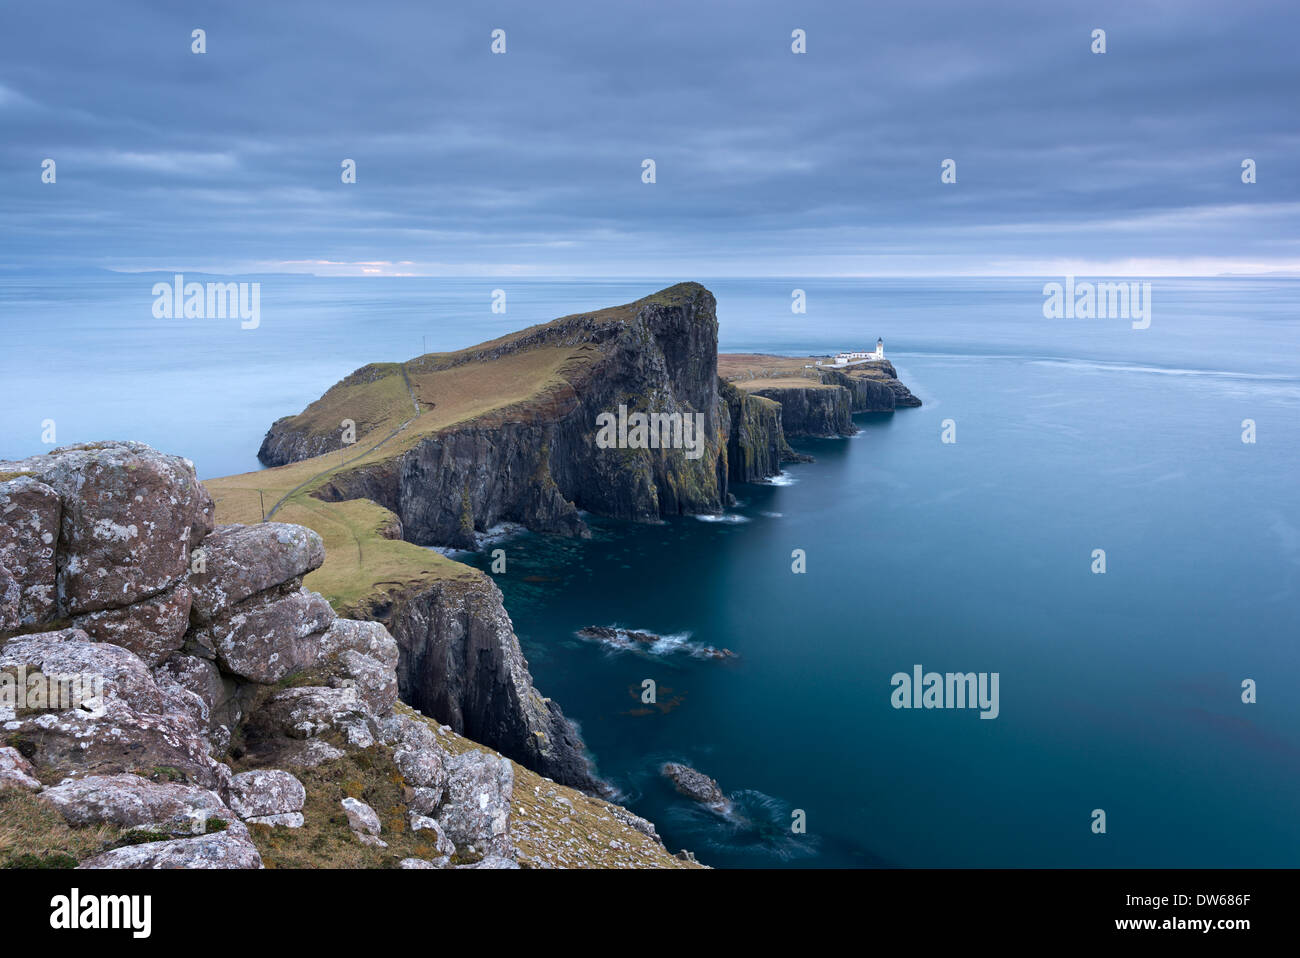 Neist Point, the most westerly point on the Isle of Skye, Inner Hebrides, Scotland. Winter (December) 2013. - Stock Image